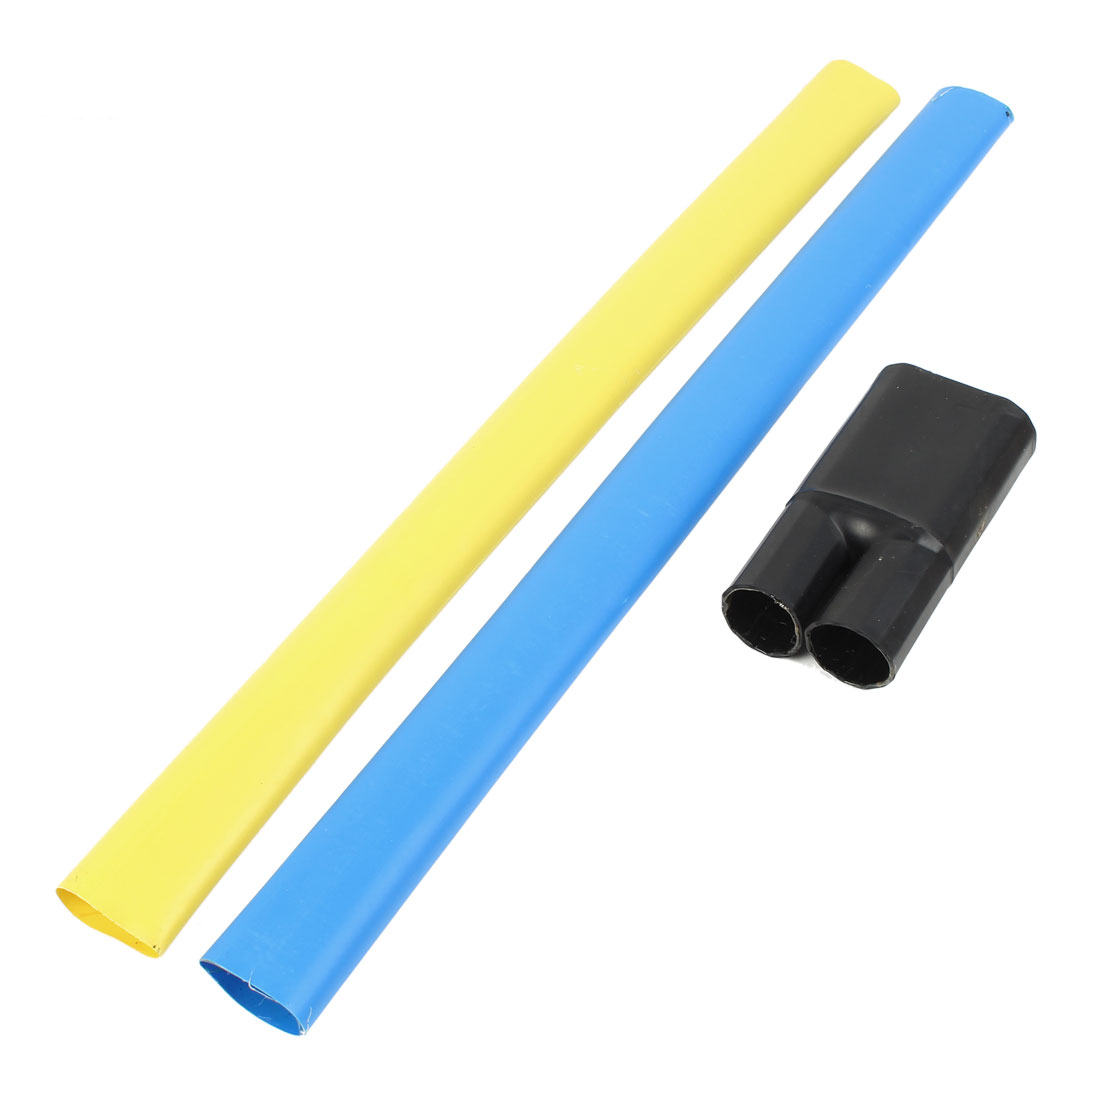 2Pcs Blue Yellow Polyolefin 35mm Dia 150-240mm2 Cable Heat Shrink Cover Wiring Shrinkable Tube 0.6M w Breakout Boot